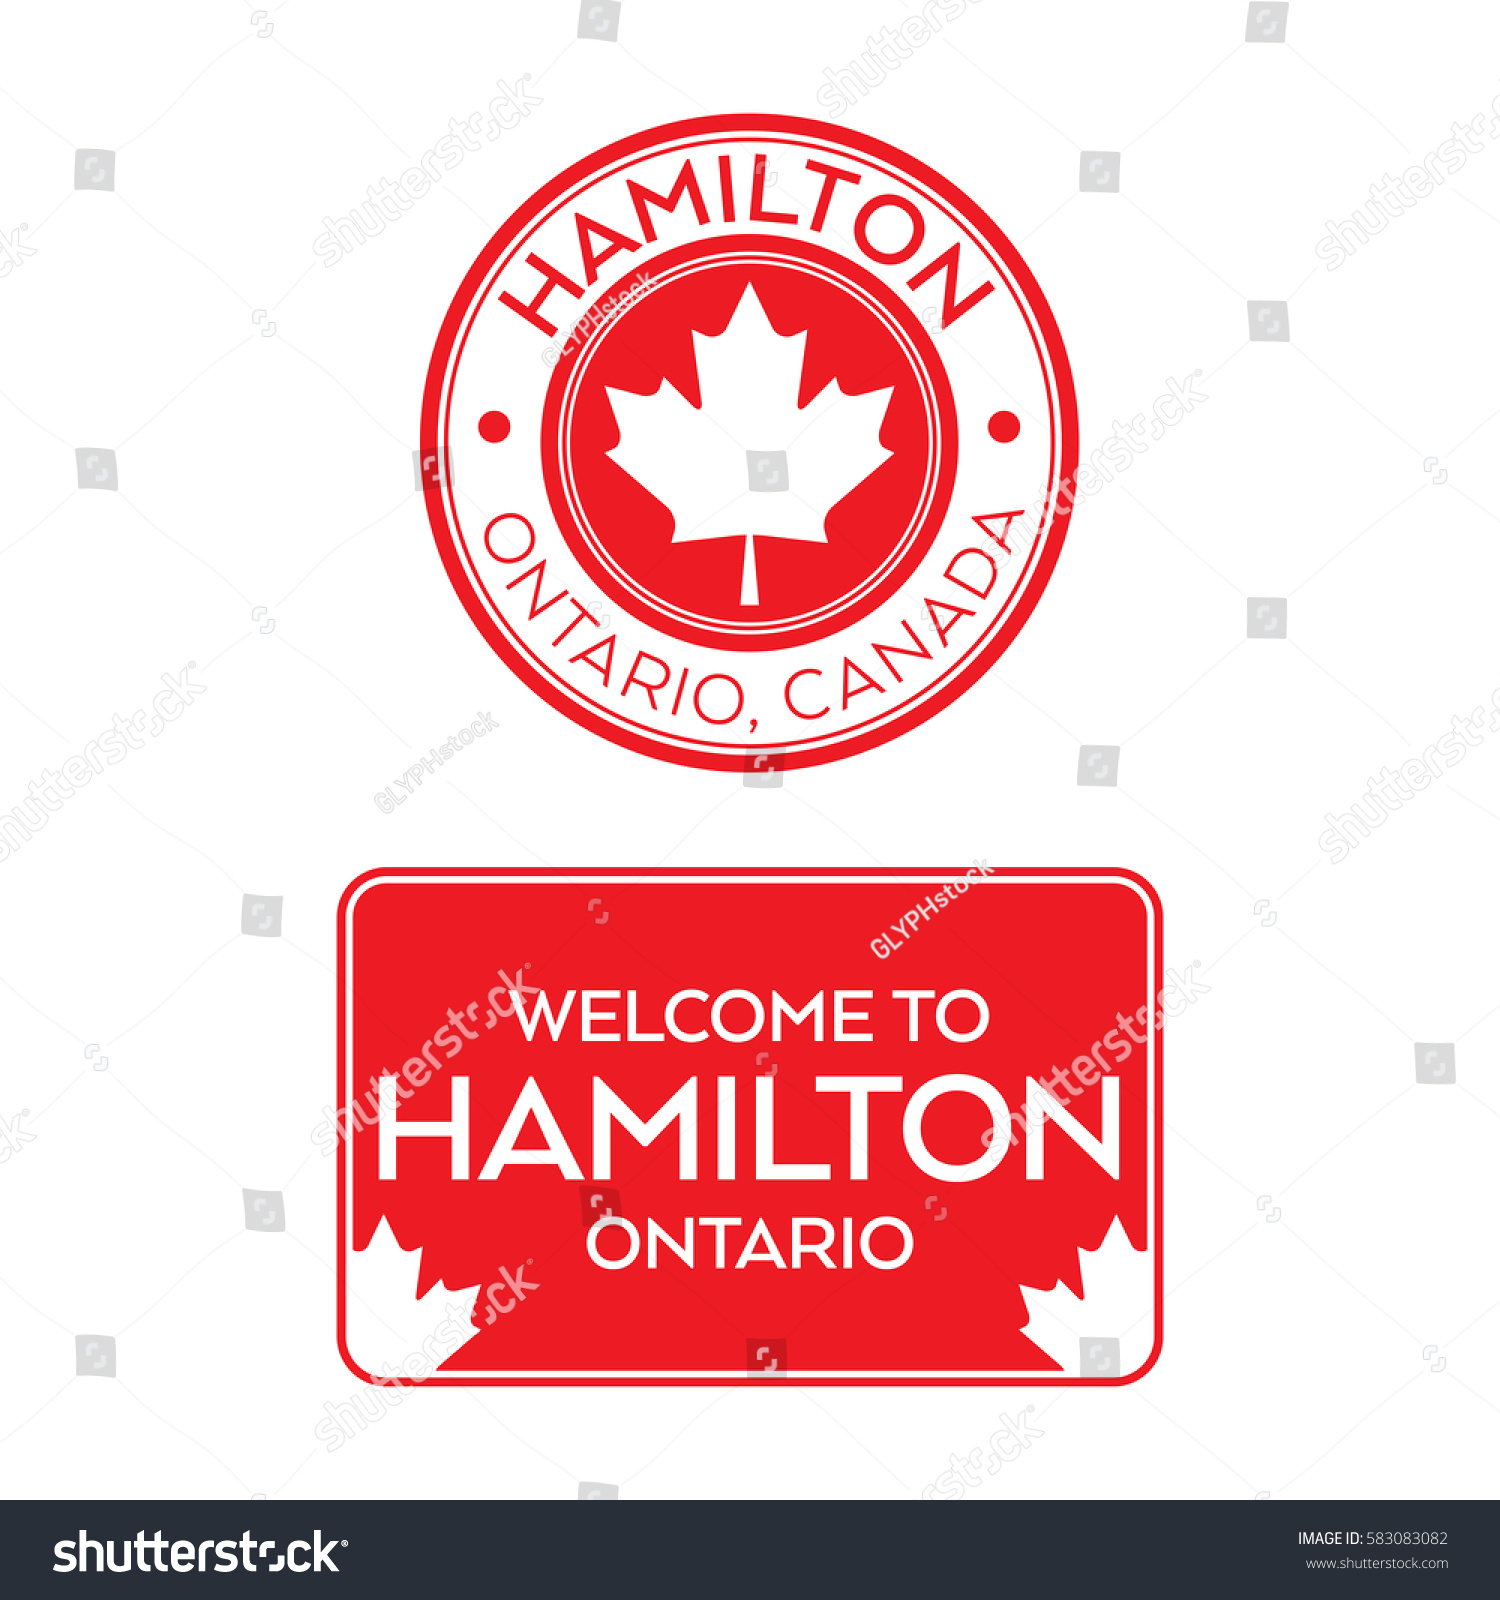 A crest and a welcome sign for hamilton ontario canada that features maple leaves